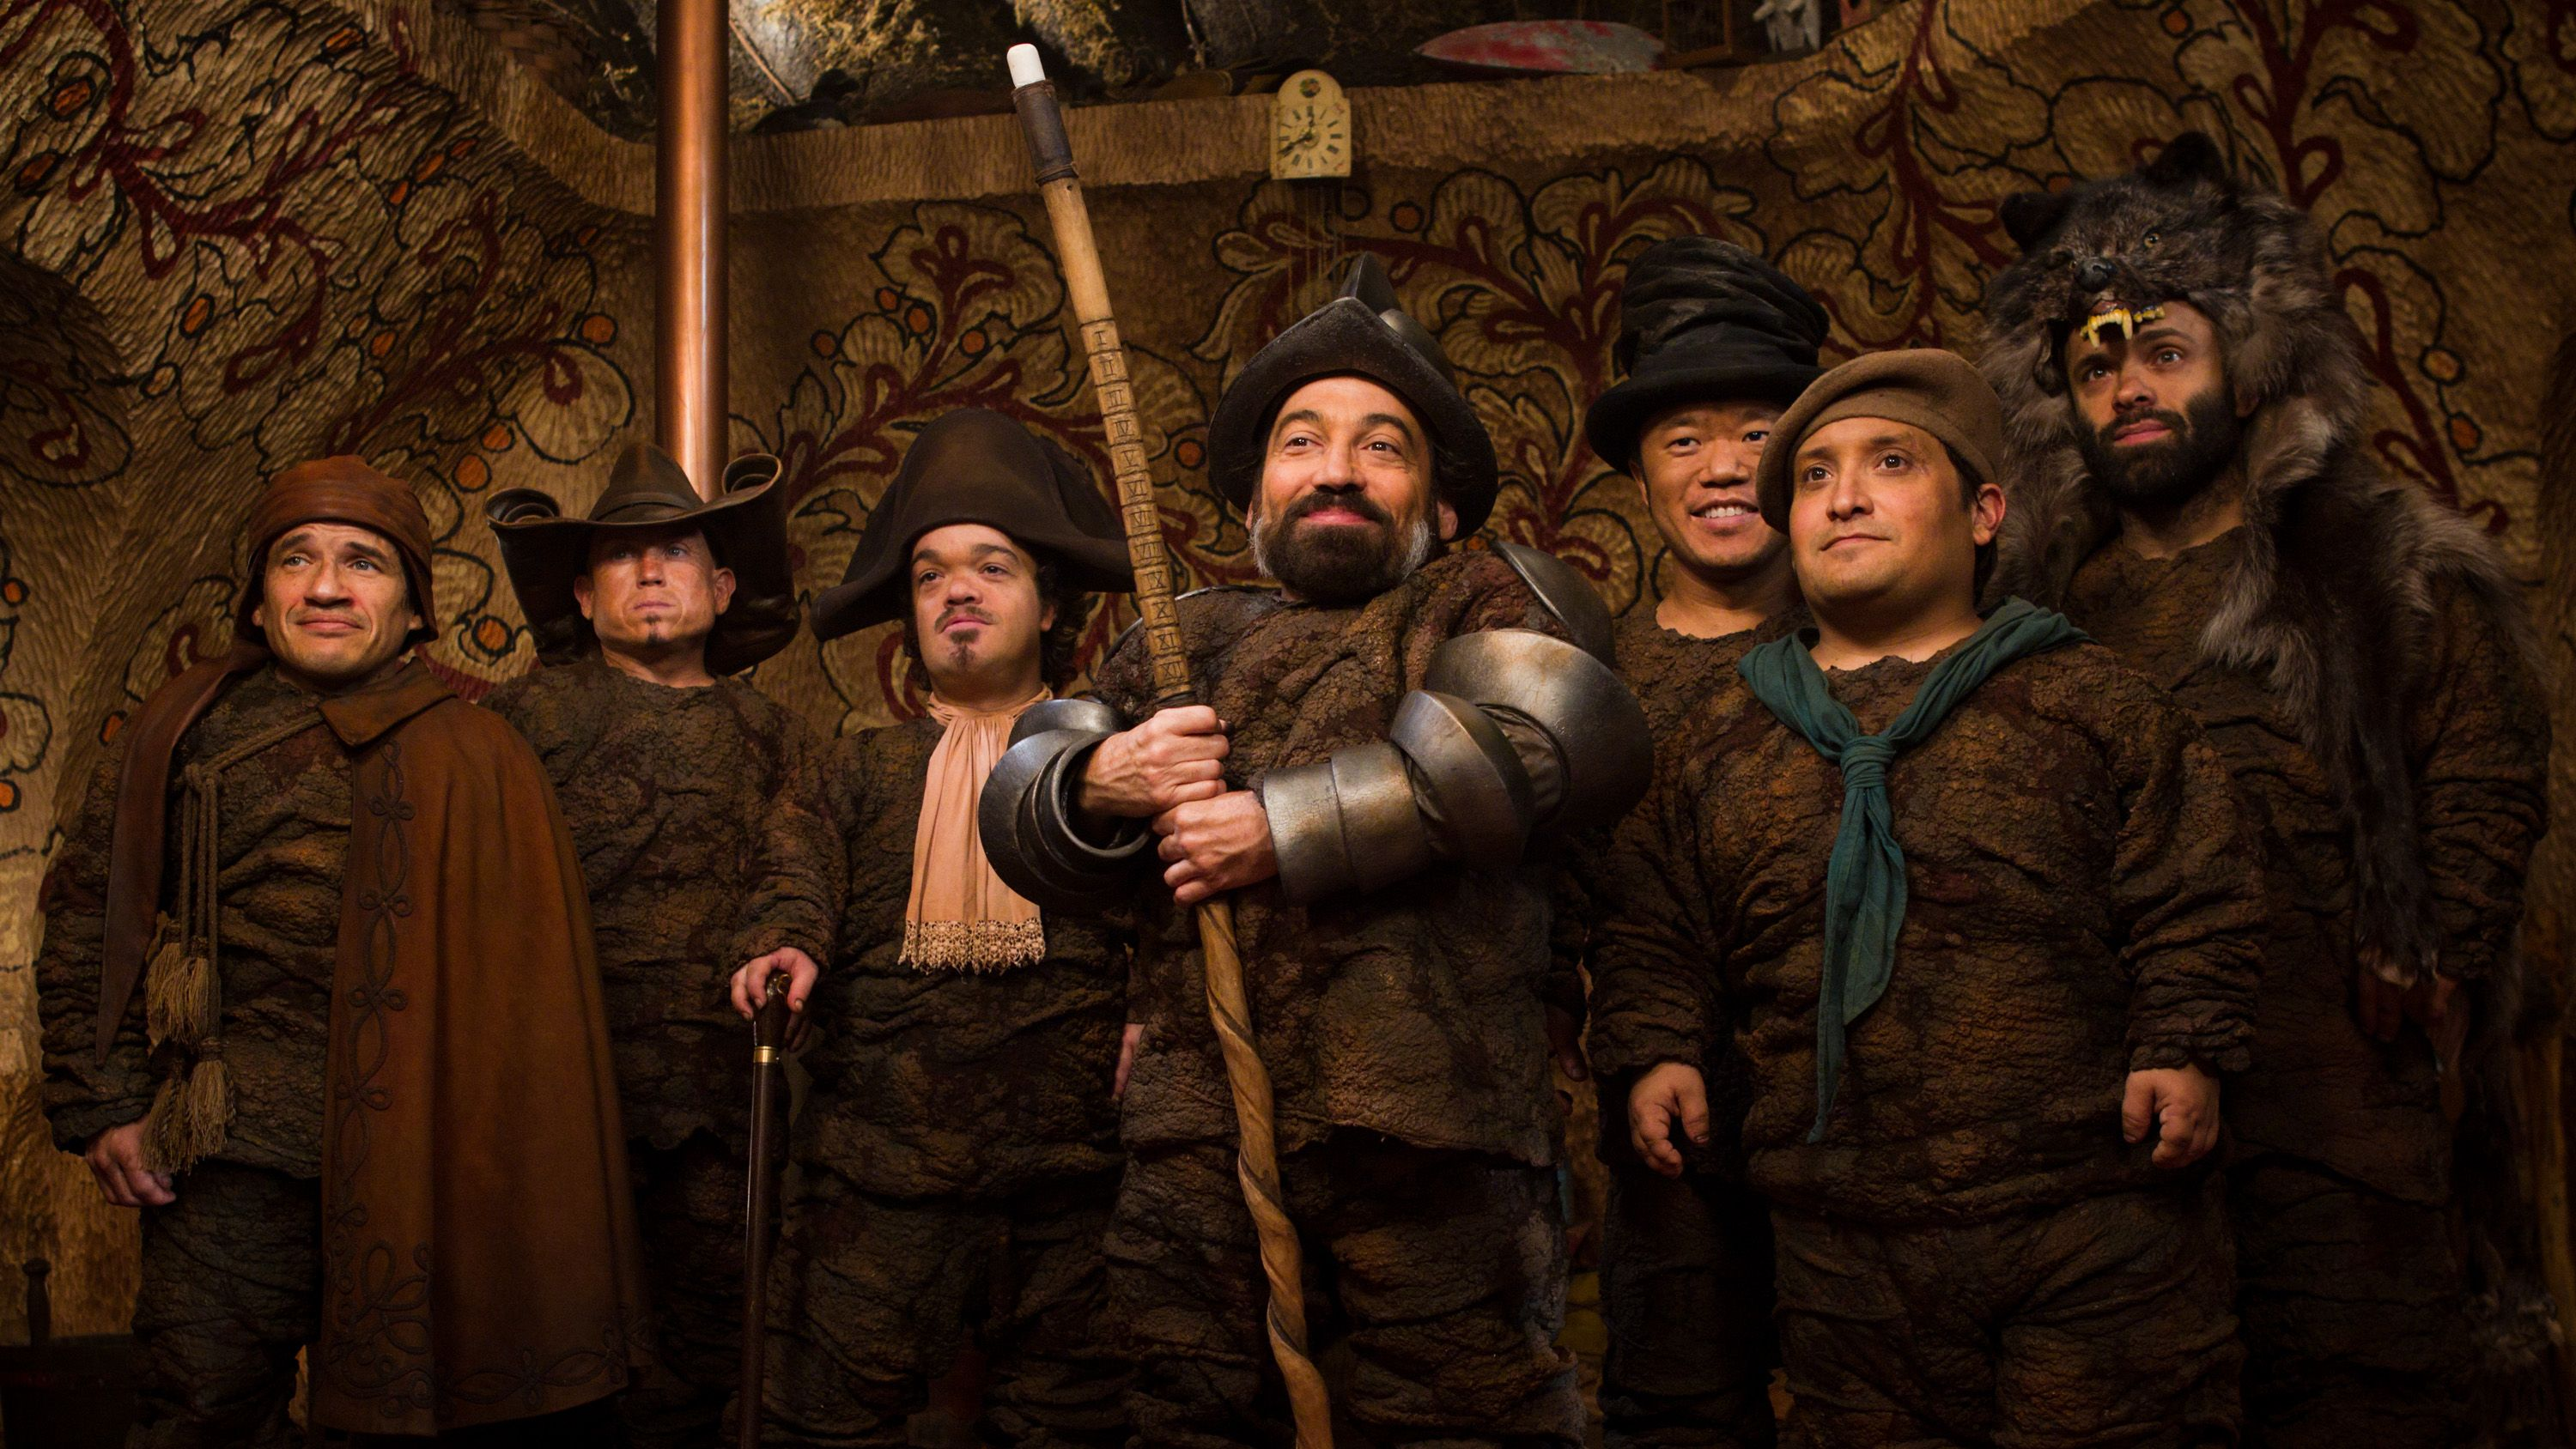 The Dwarves from Mirror, Mirror:  In the back on the right are Ronald Lee Clark (in the top hat) and Sebastian Saraceno (in the bear hood) from Pit Boss.  I love them both!!!!!